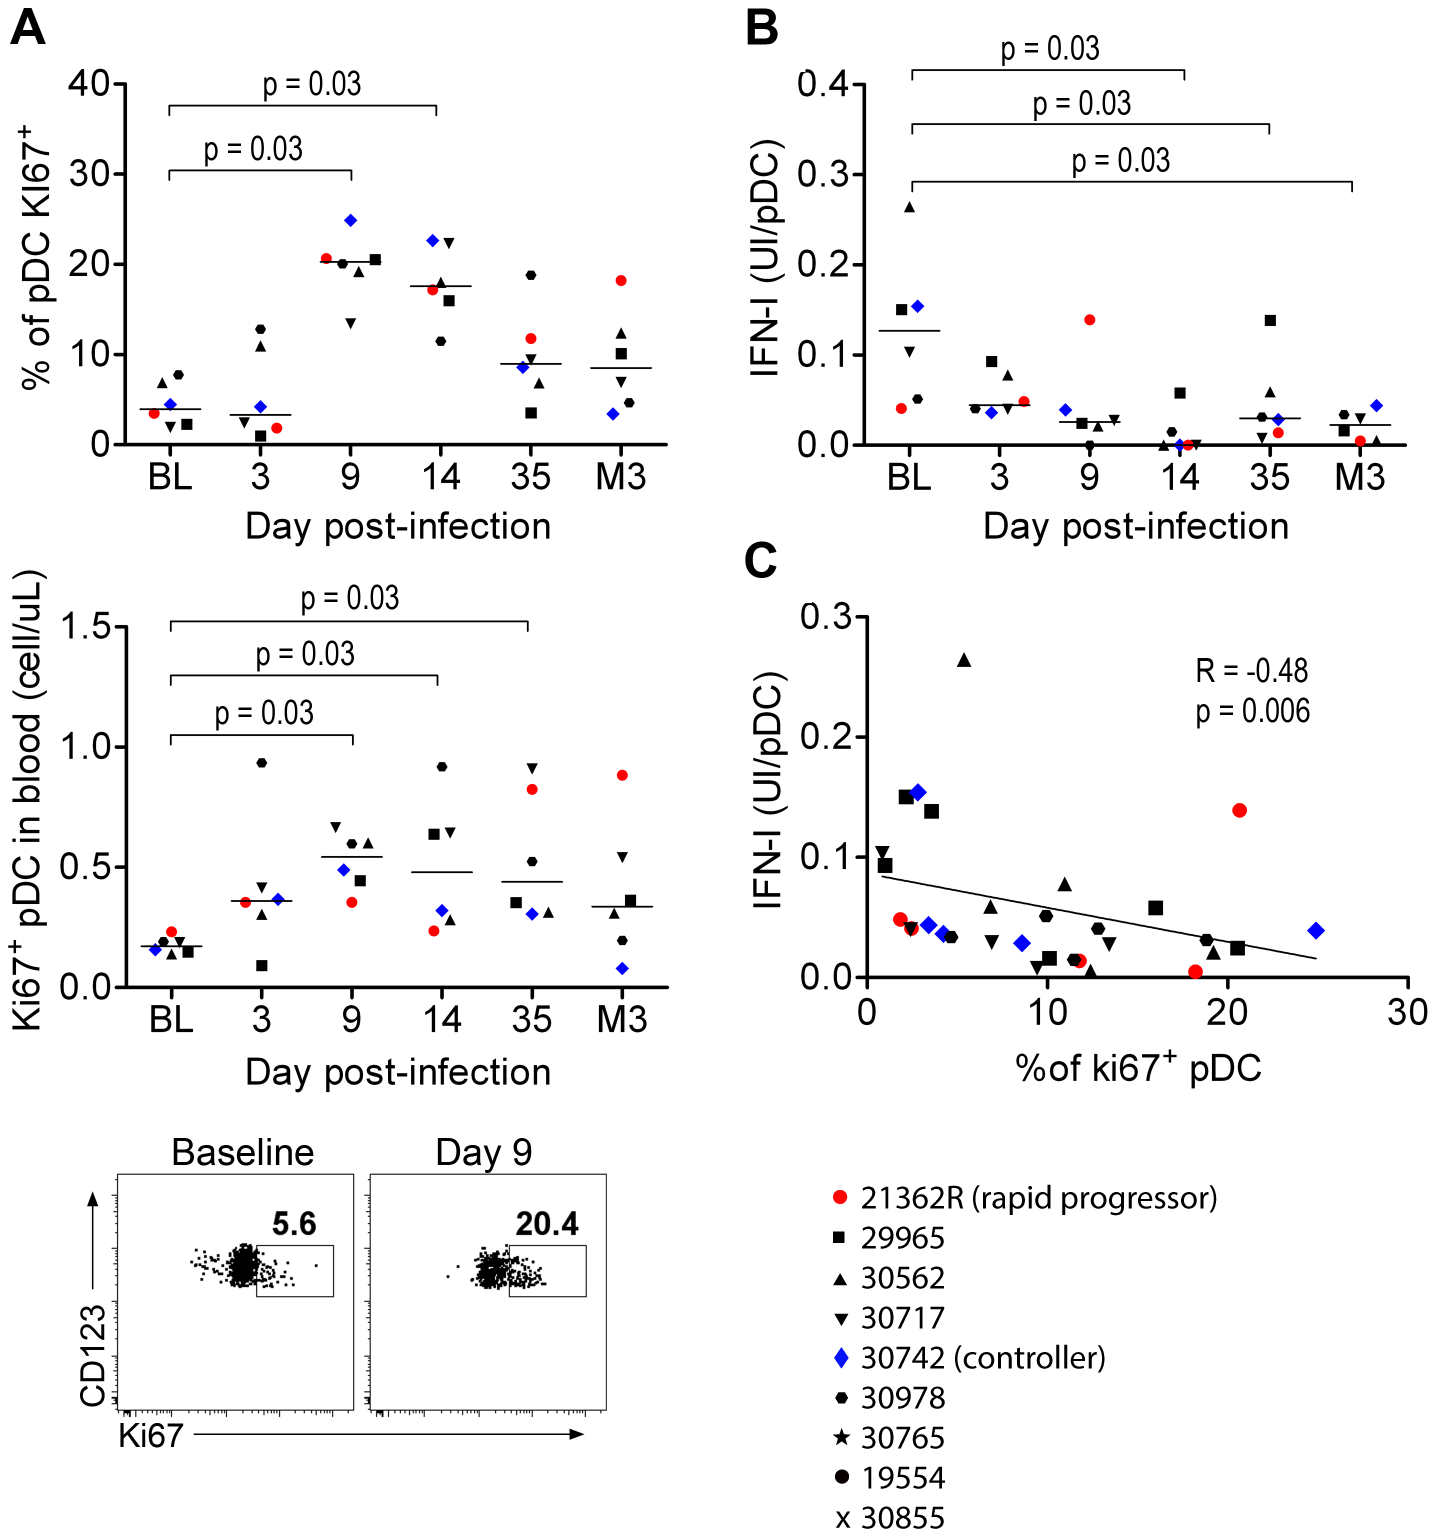 Circulating PDC show decreased responses to SIV inversely correlated with the increased prevalence of Ki67<sup>+</sup> pDC precursors.